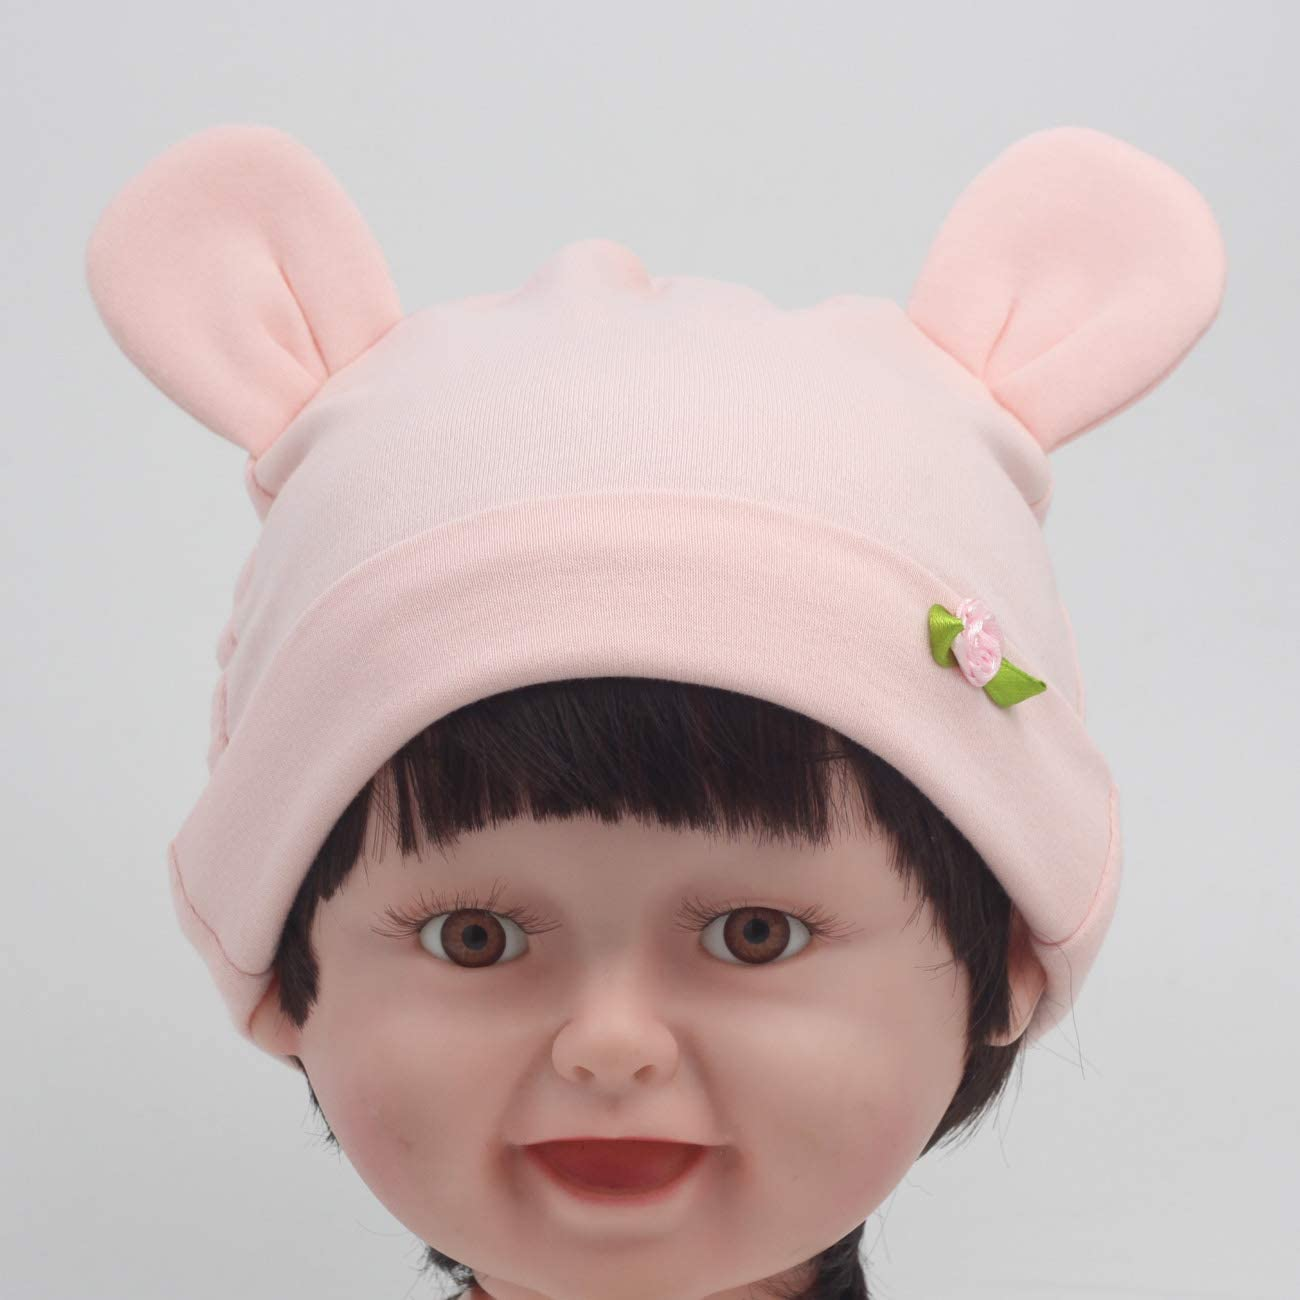 Nihao Baby Girl Beanie Hats Knotted Caps Newborn Hats 3Pcs//Set